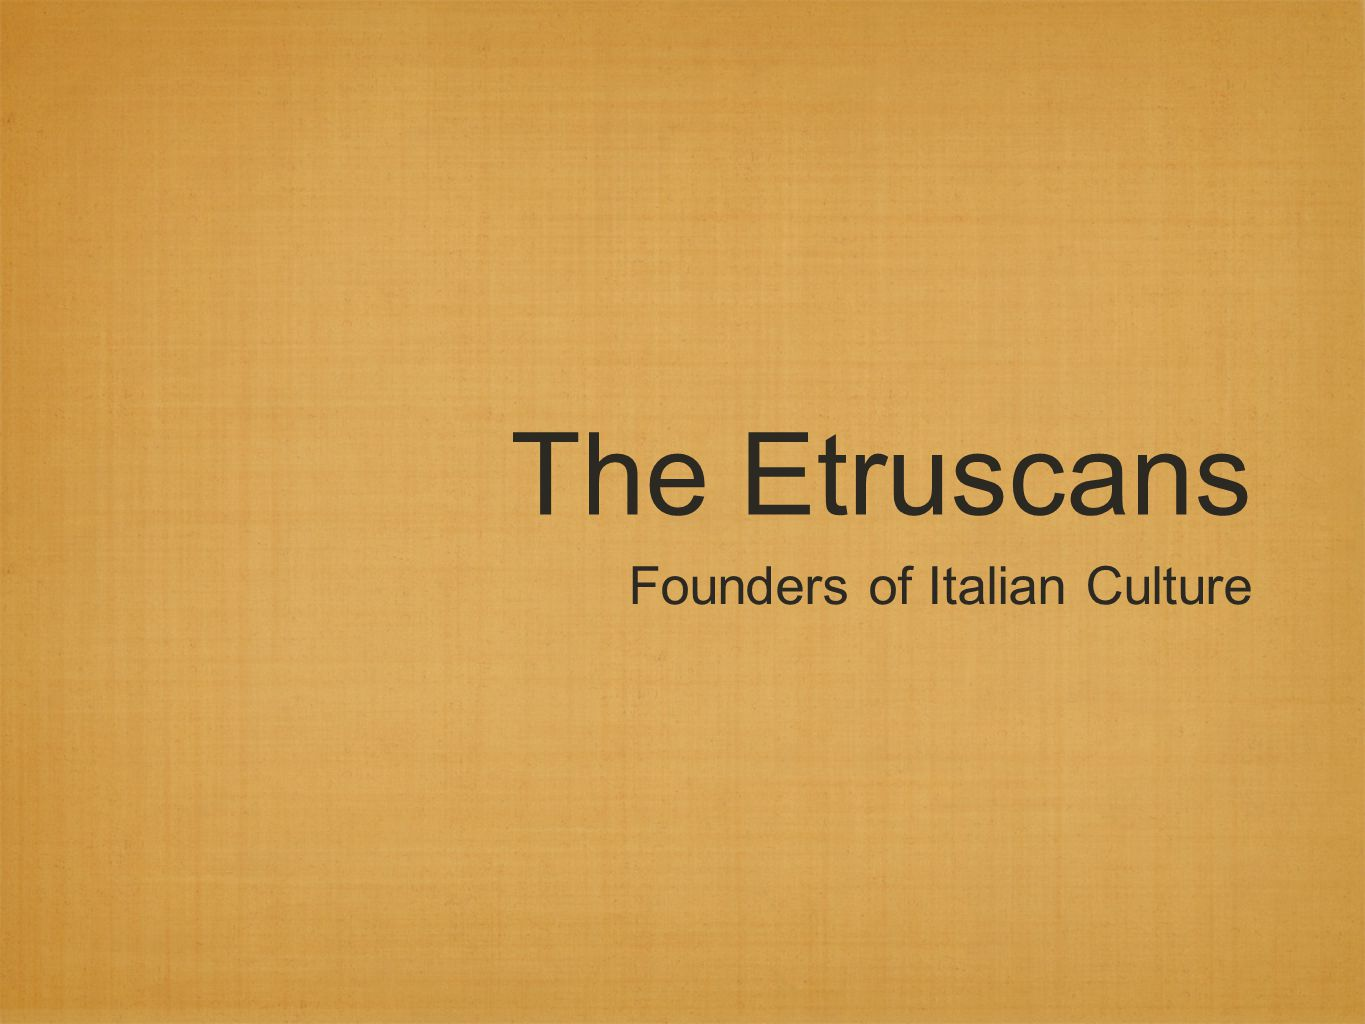 The Etruscans Founders of Italian Culture